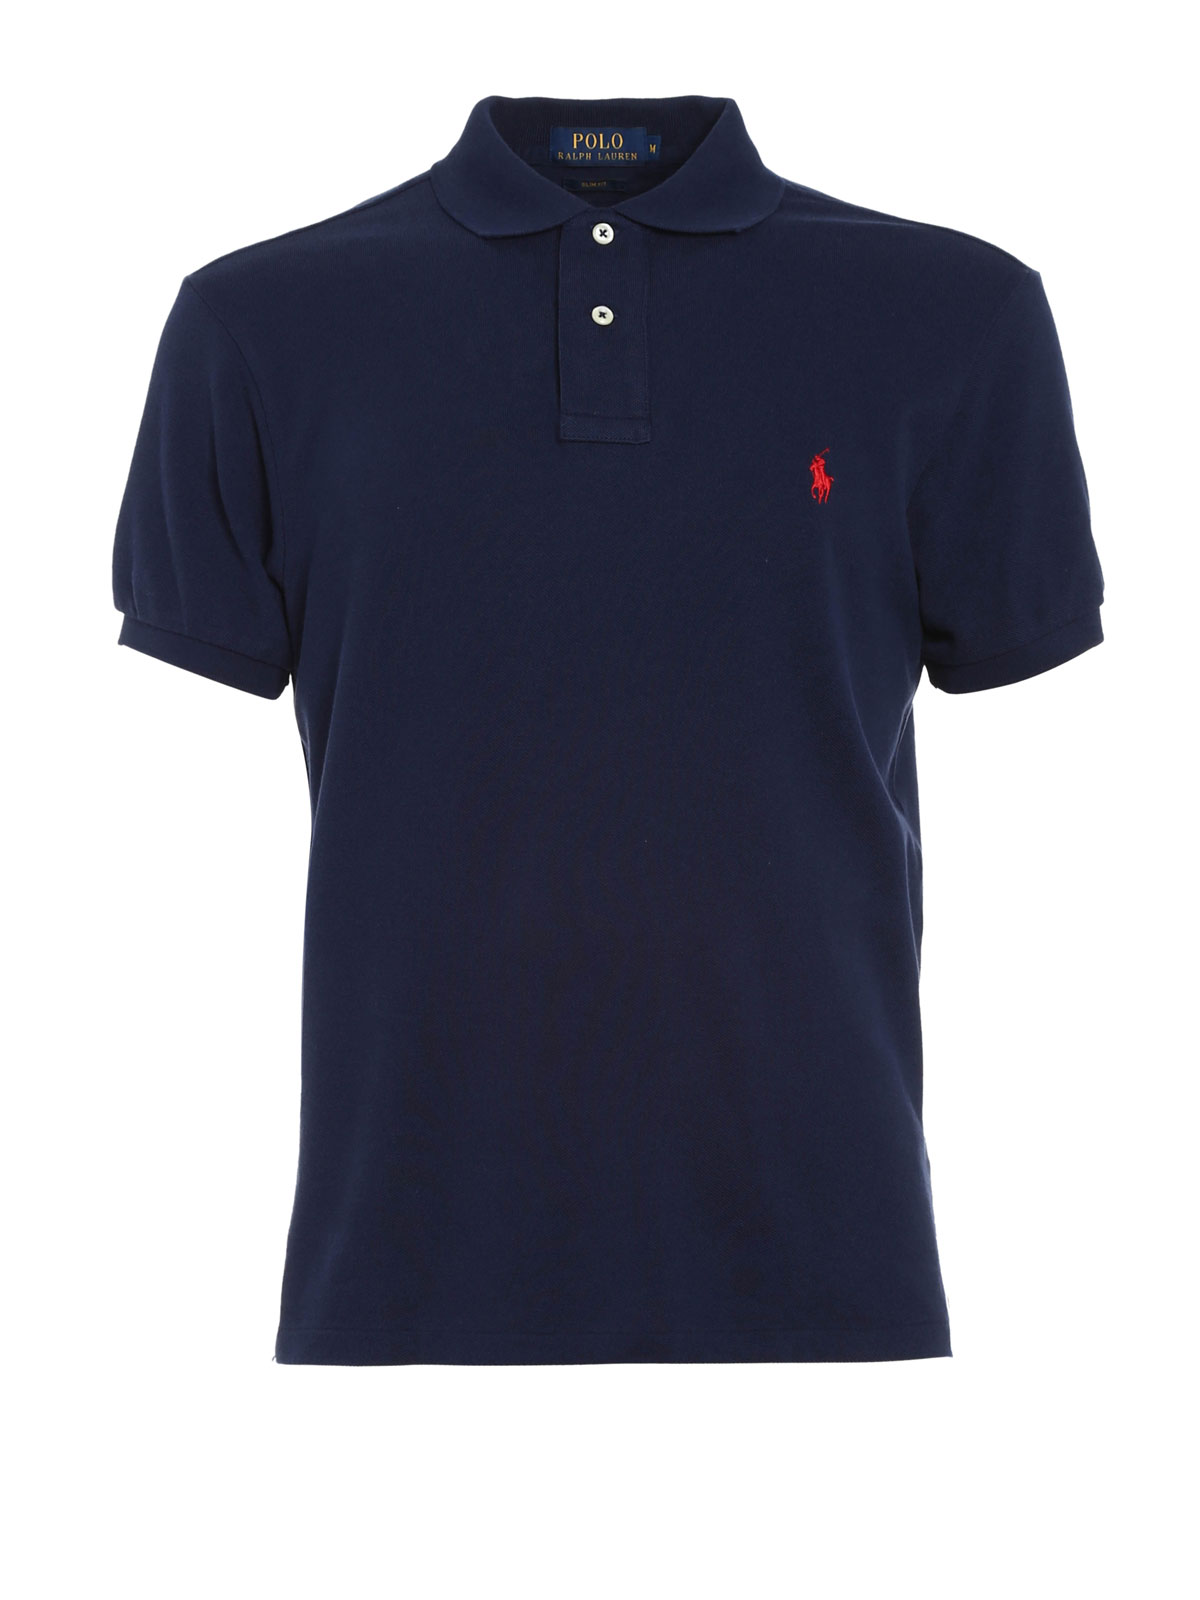 Polos & Polo Shirts for Men Since its introduction in , Ralph Lauren's polo shirt has become a lasting icon of American culture and lifestyle. Originally only available in one style and a variety of signature colors, the polo has since become available in numerous combinations and styles.